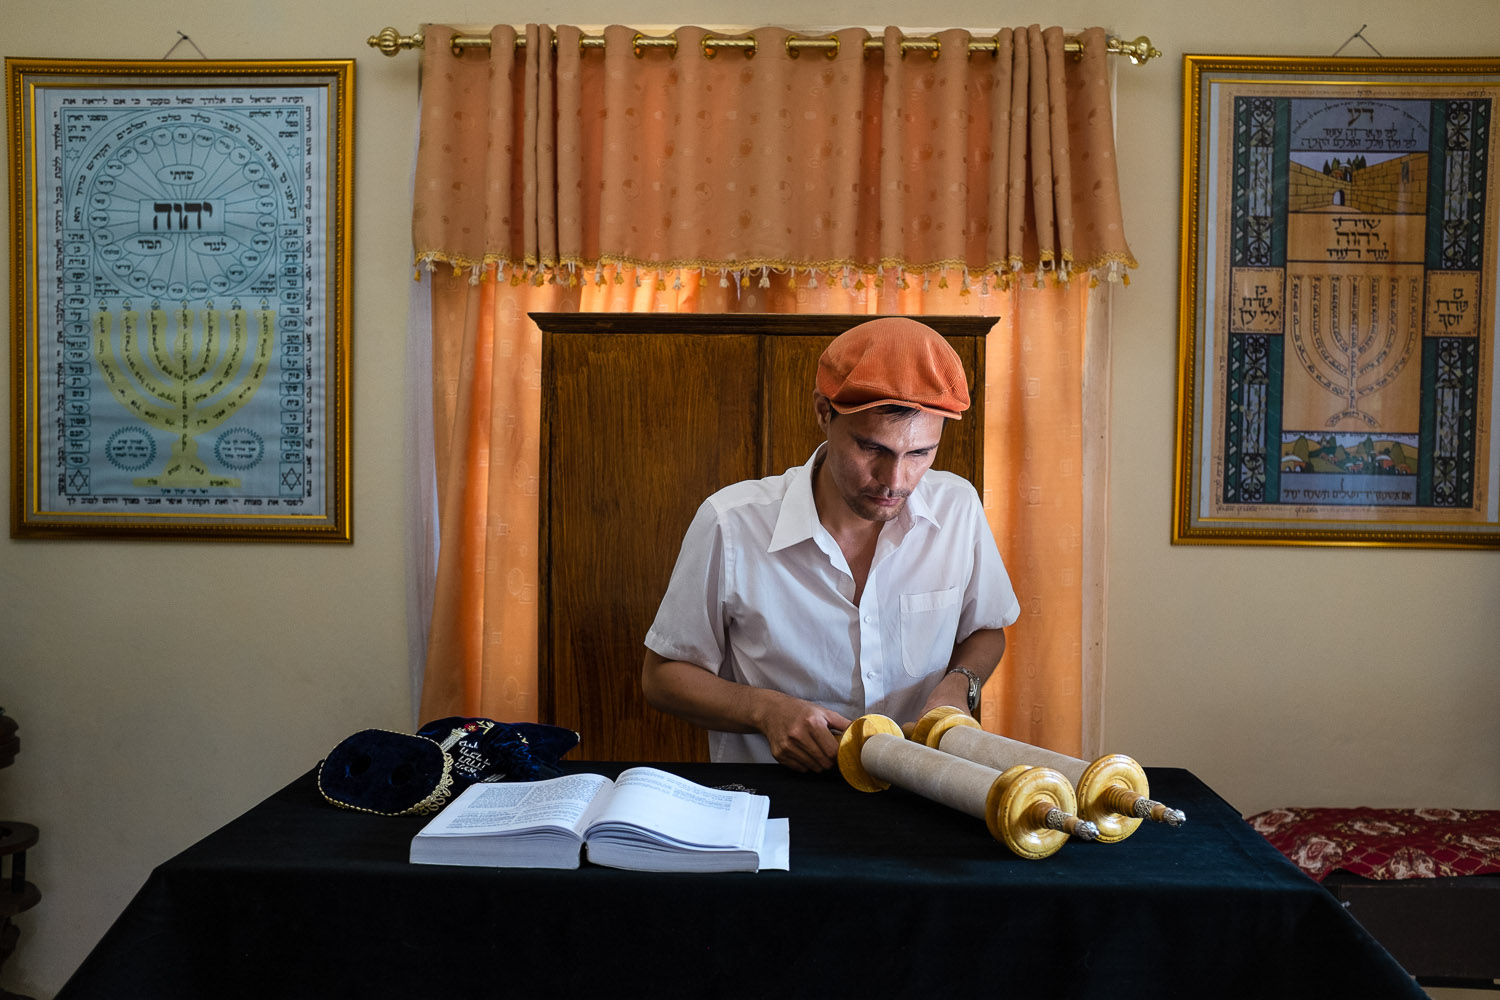 Vicky Ratumbanua (Avshalom) opens his Torah scroll in his home synagogue in Manado, North Sulawesi, Indonesia.